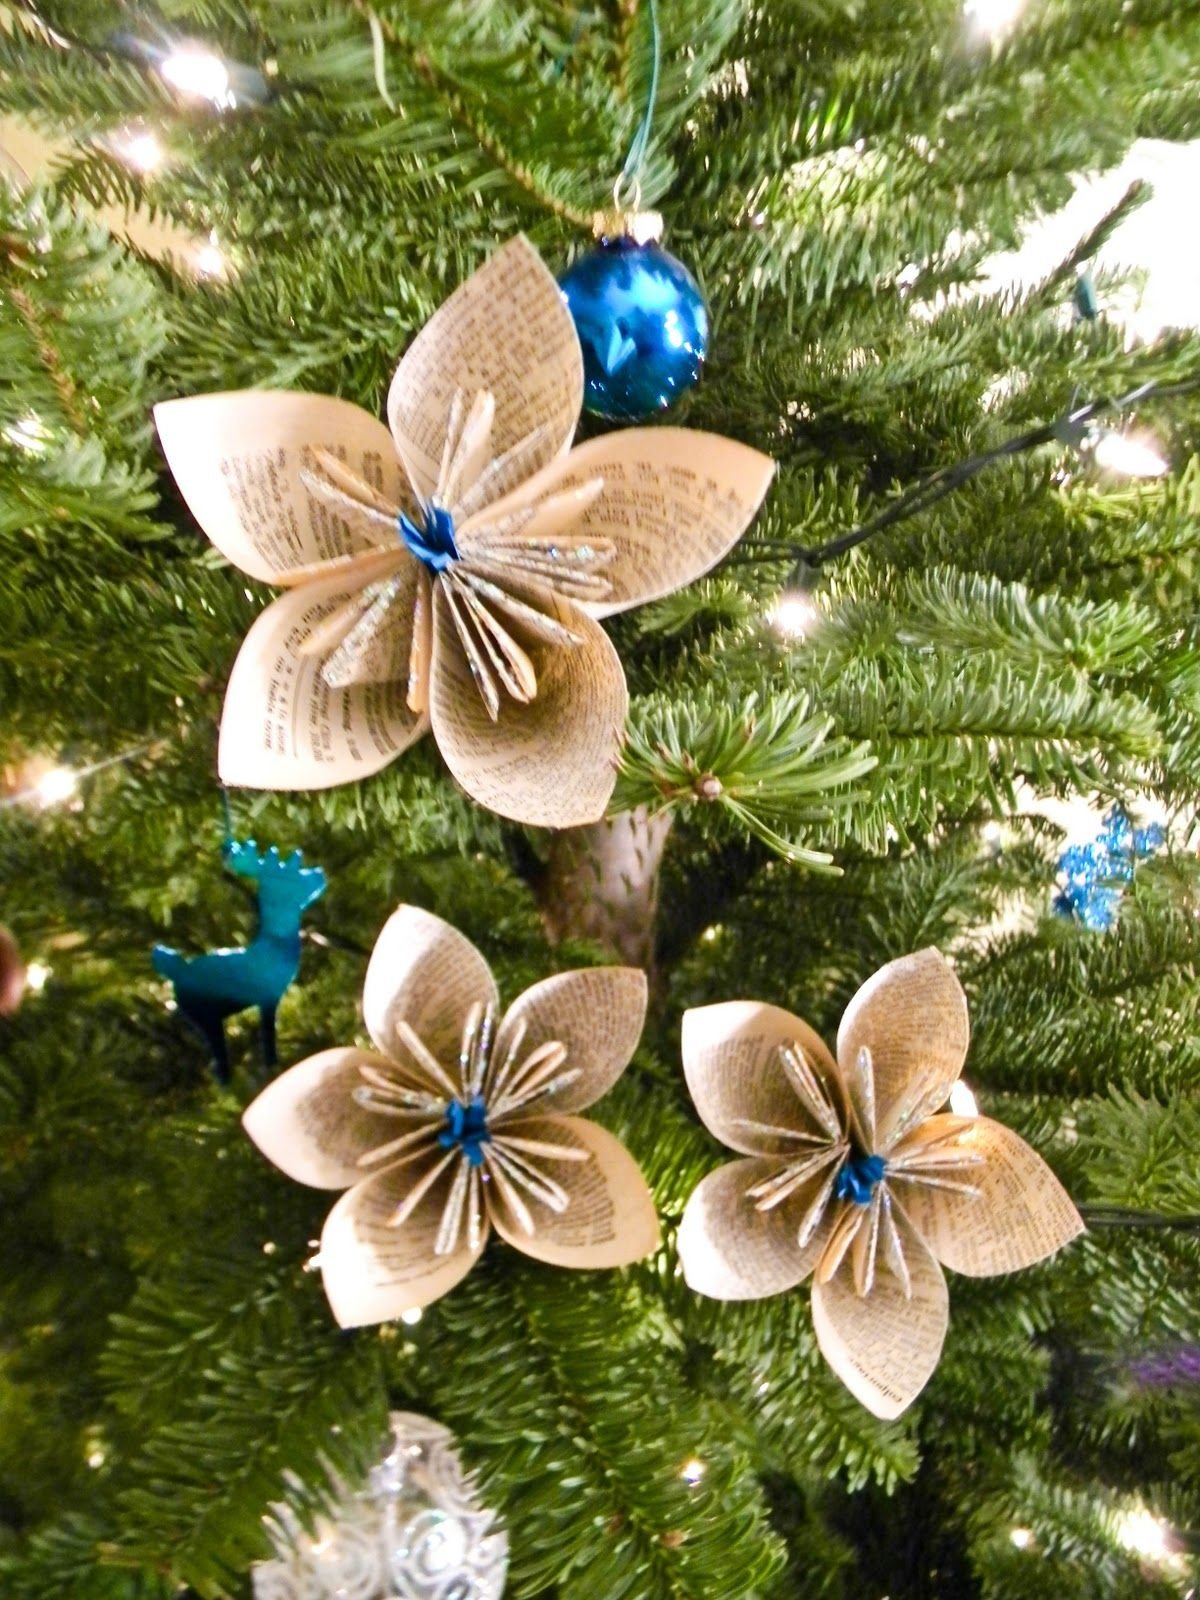 11 Diy Dictionary Flowers All Gorgeous 50 Diy Paper Christmas Ornaments To Create Paper Christmas Ornaments Paper Christmas Decorations Diy Christmas Paper